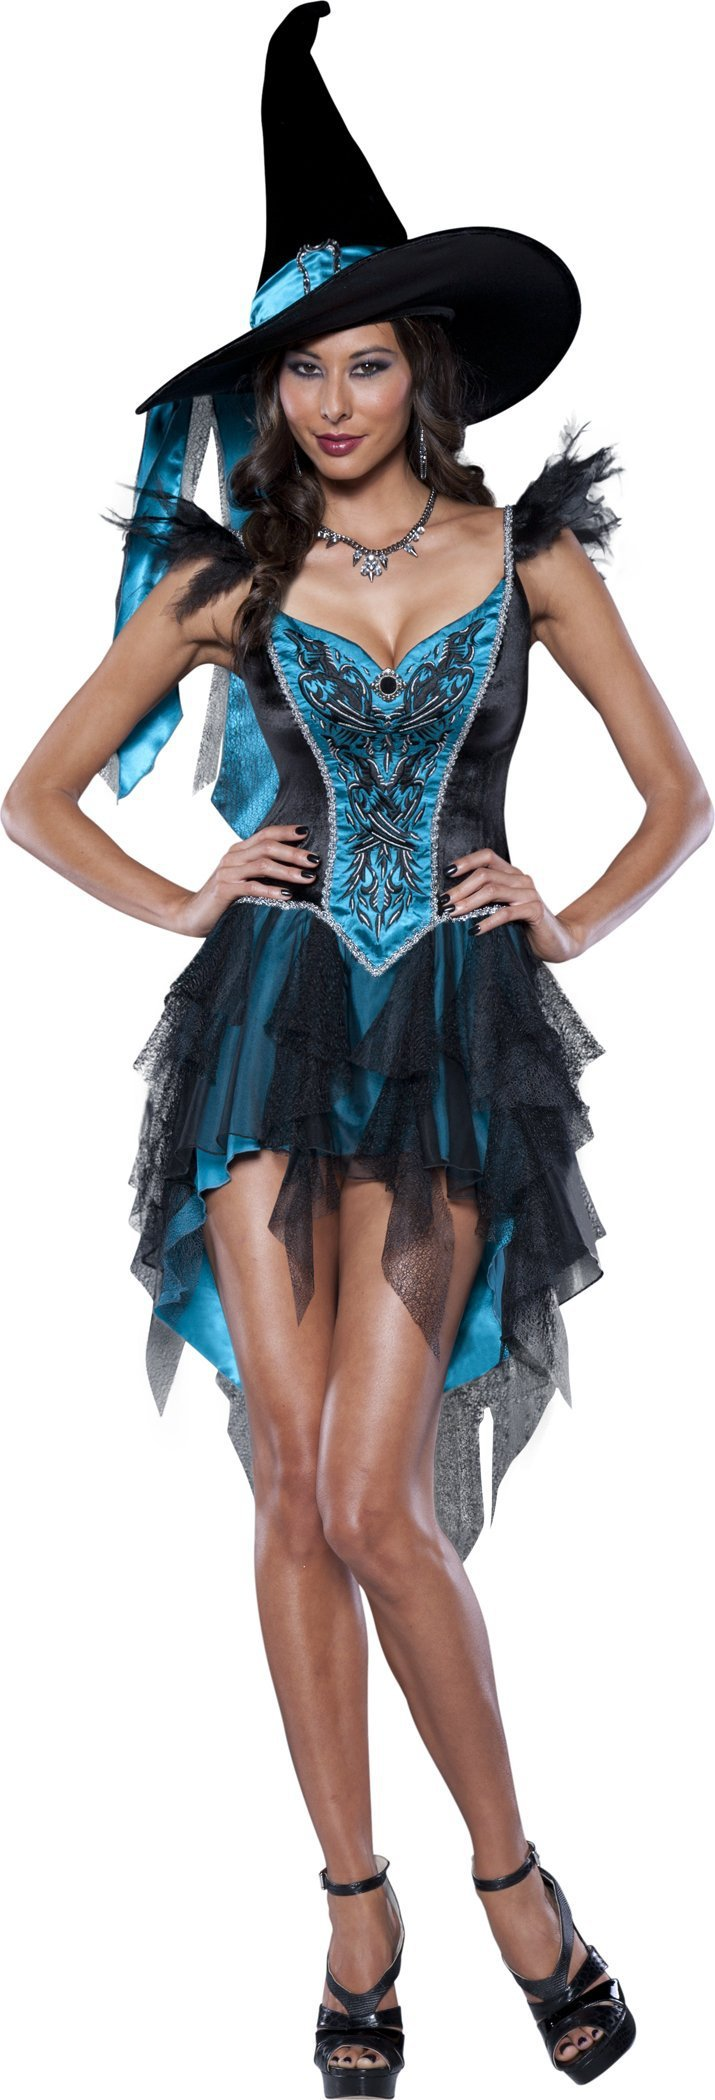 InCharacter Costumes LARGE Adult Enchanting Witch Deluxe Costume